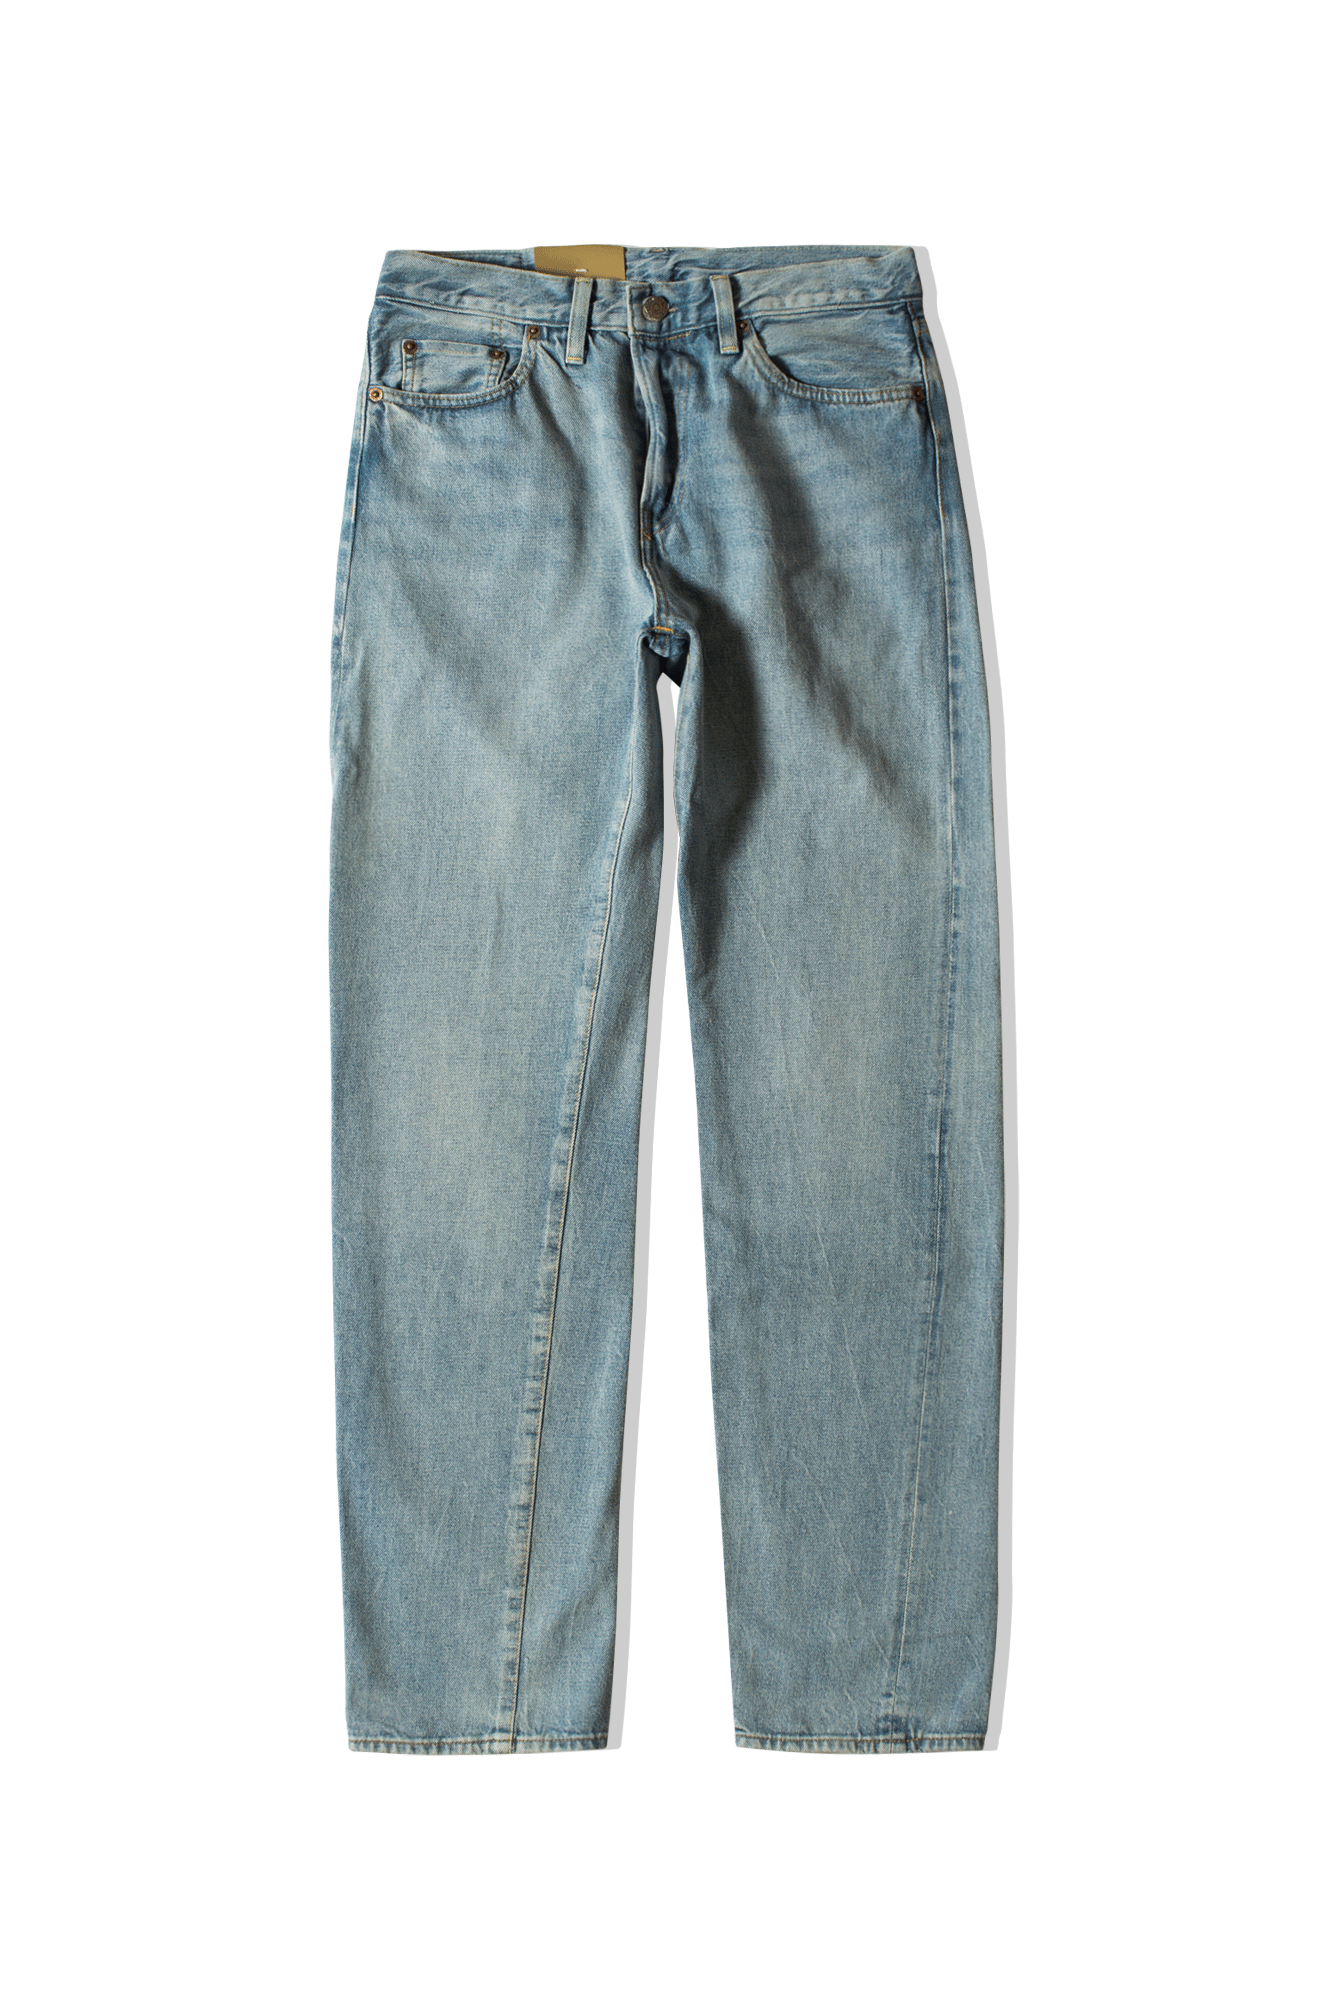 1954 501 Jeans Blueprints Blue